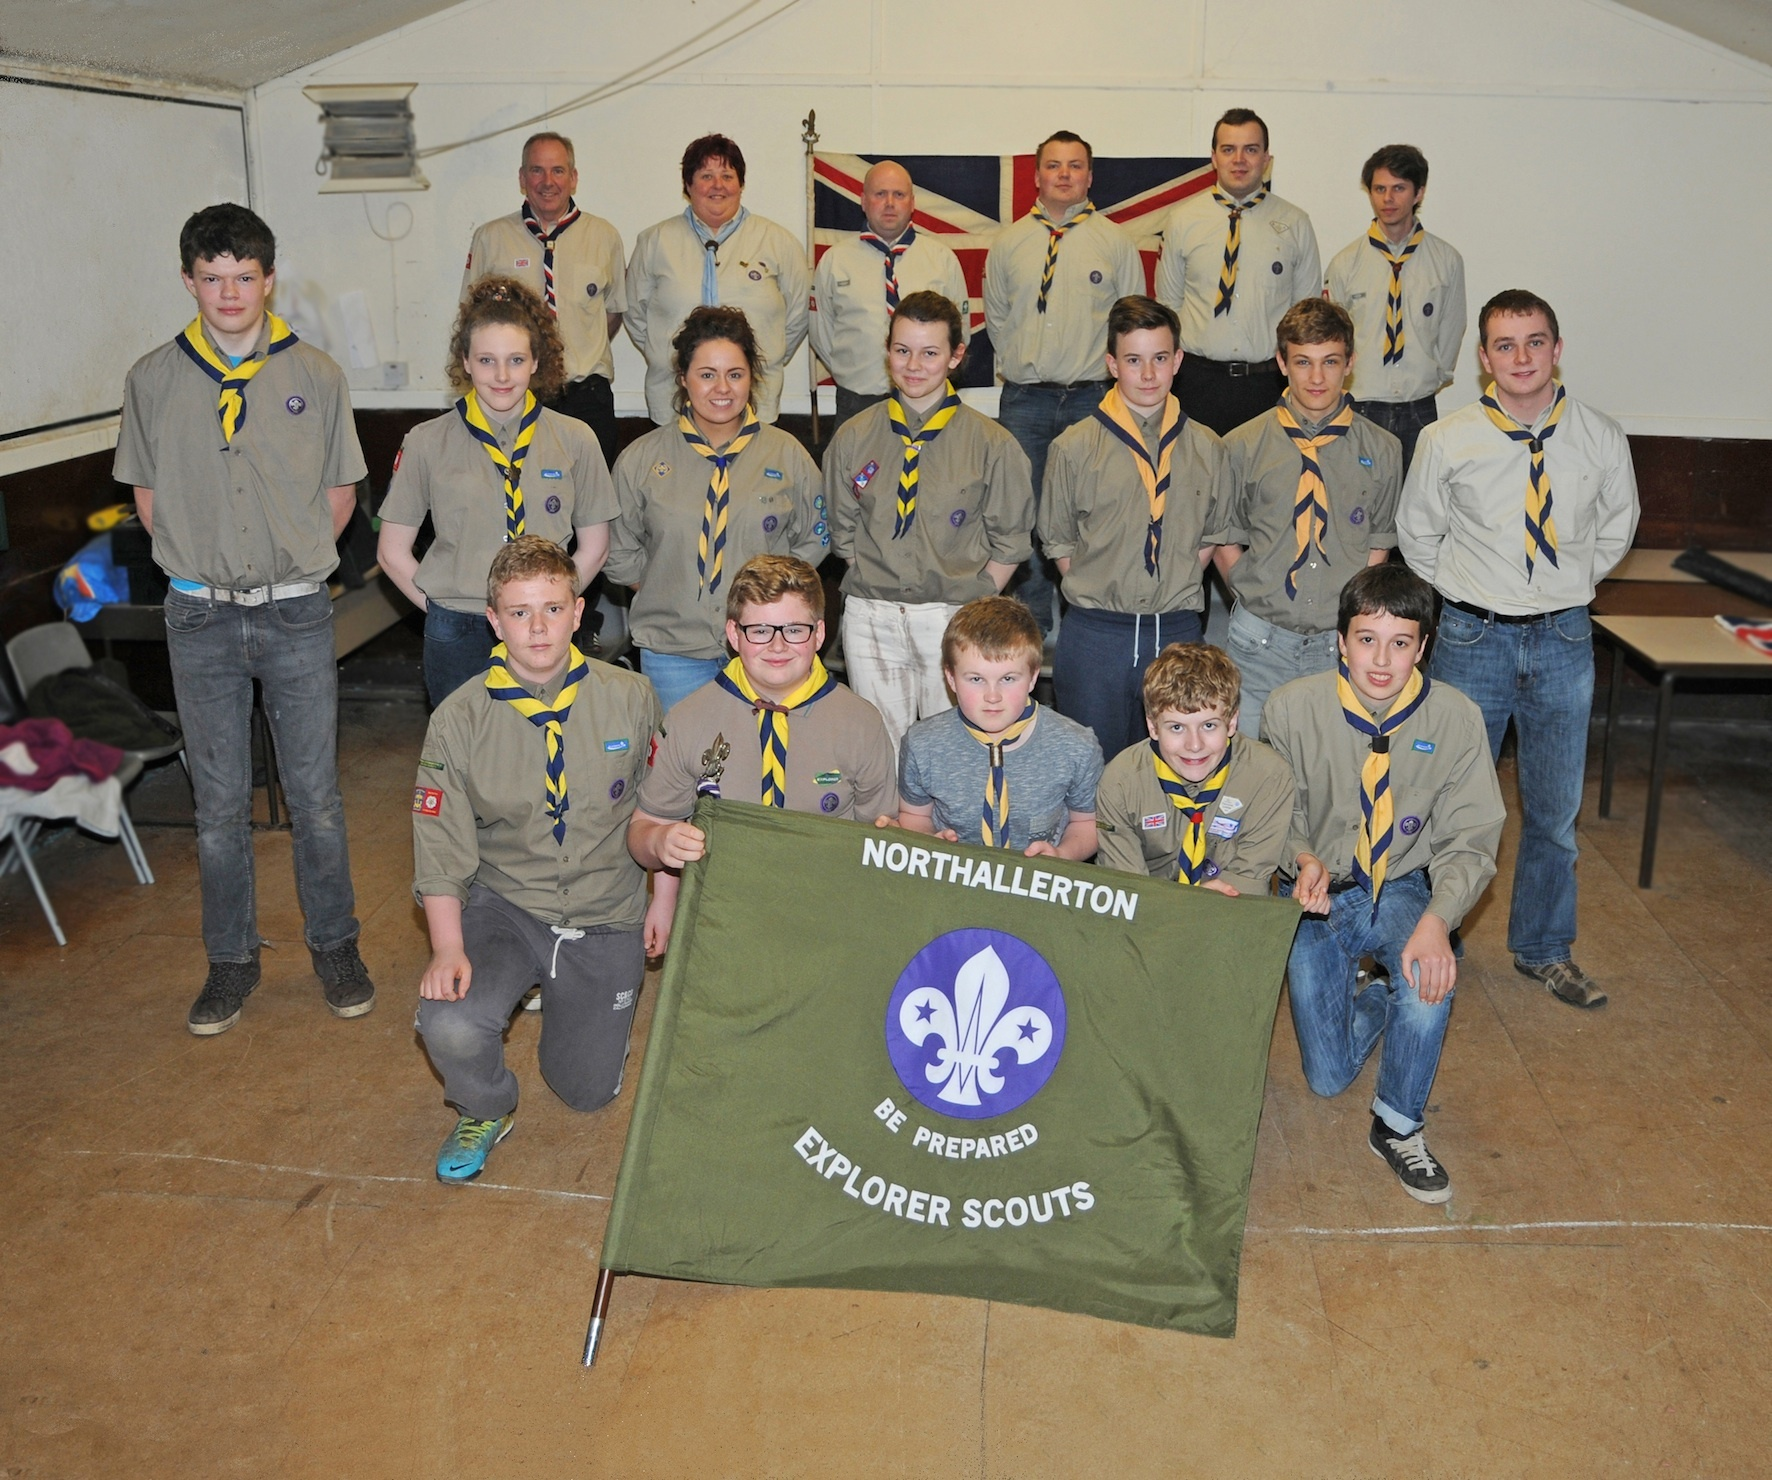 OZ-BOUND: The Northallerton scouts and leaders who will be heading to Australia next January.